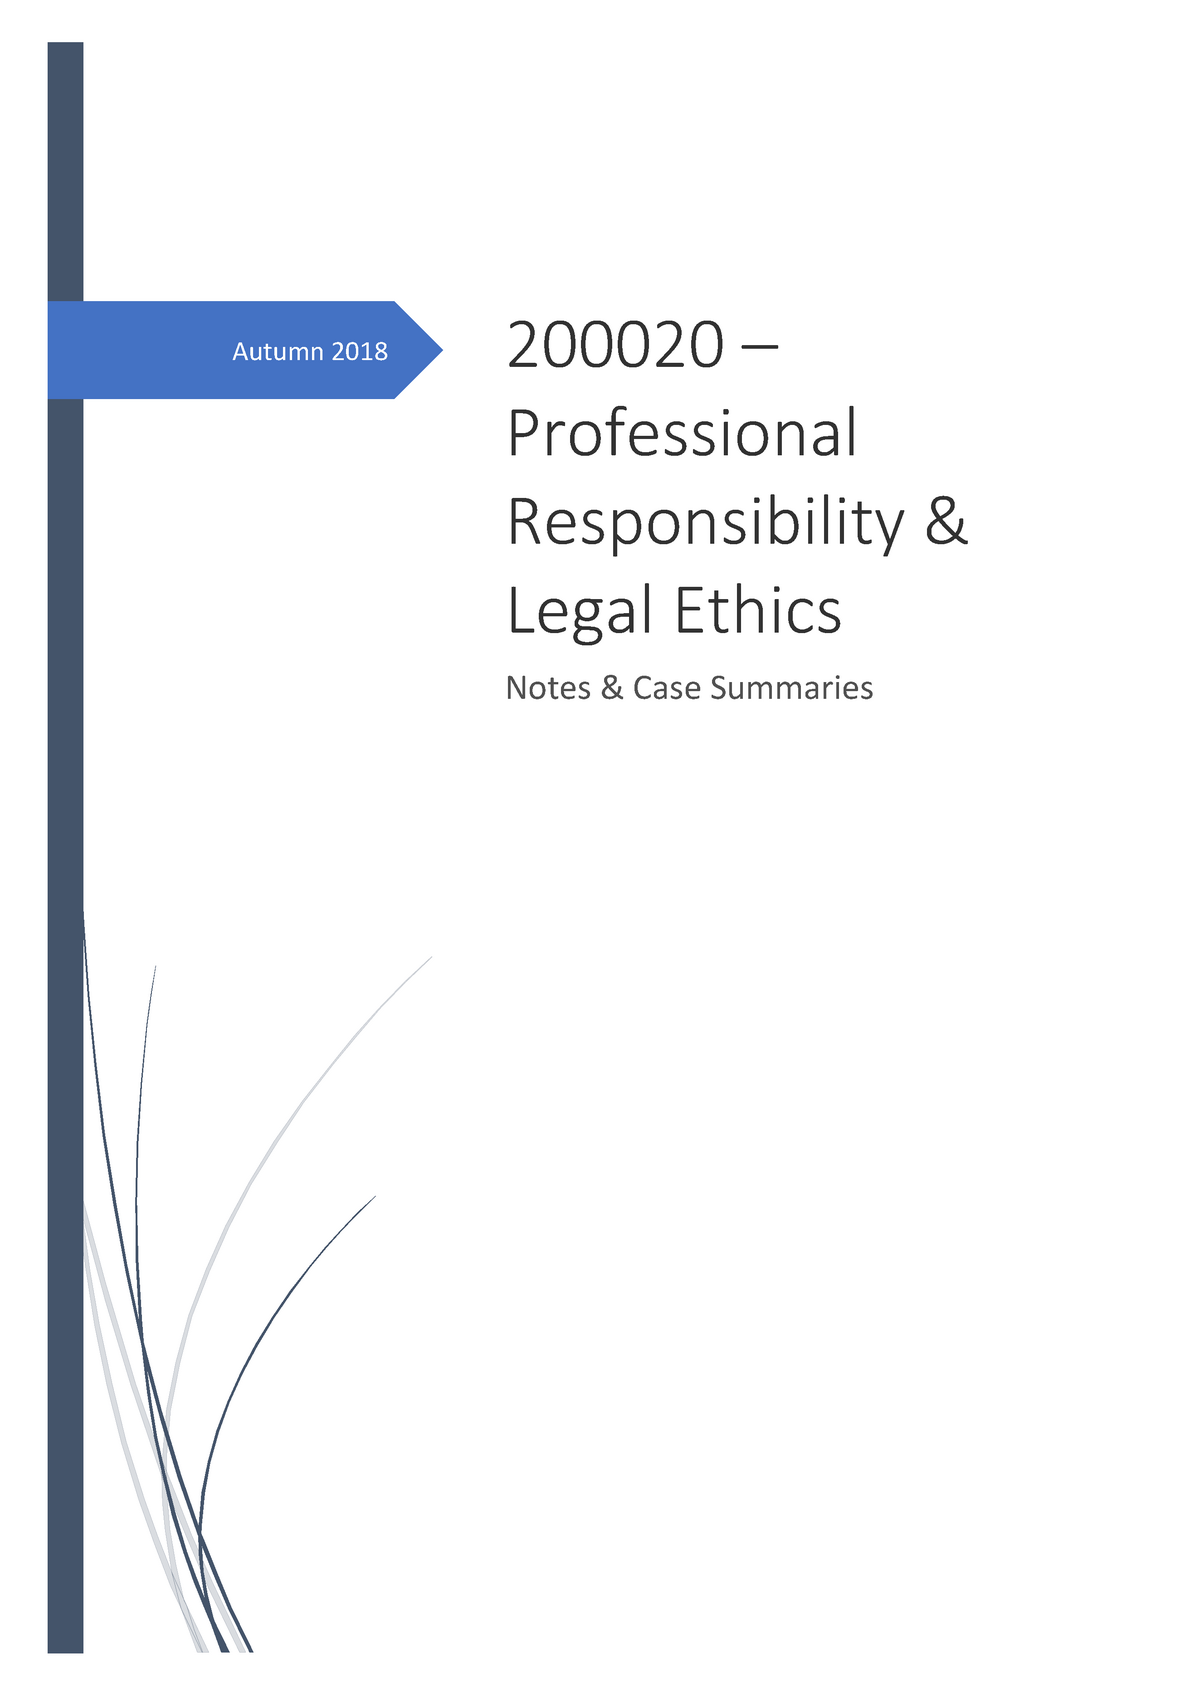 Ethics exam notes - 200020: Professional Responsibility and Legal